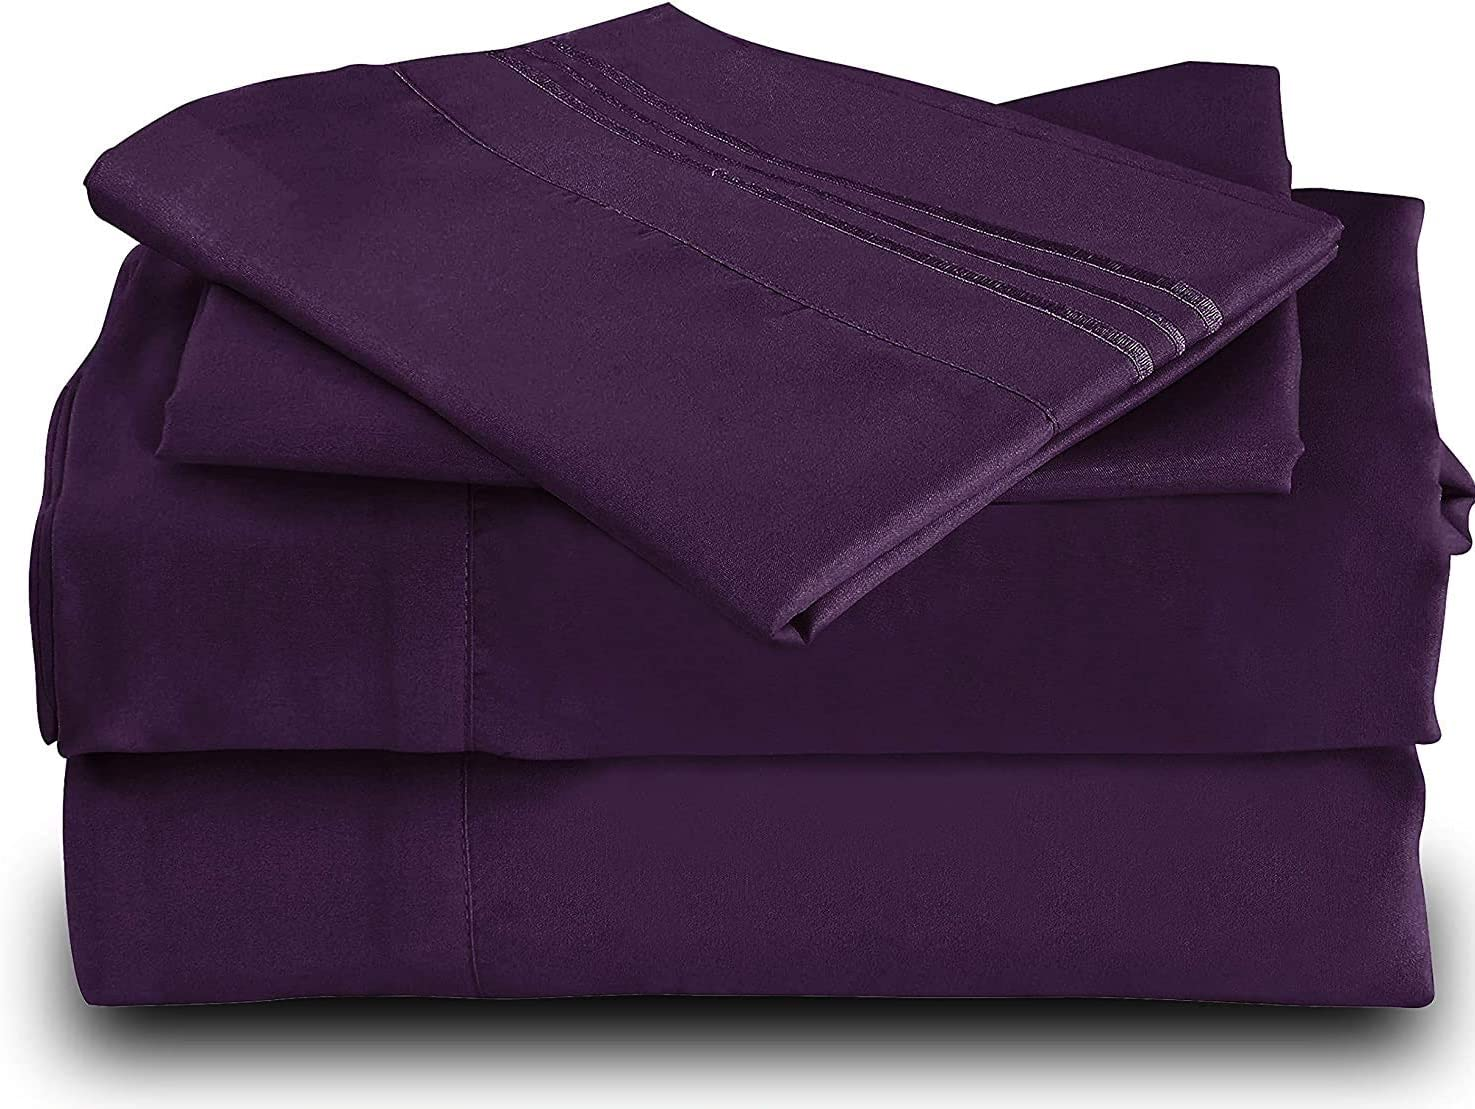 Cool Bamboo Bed Sheet Set - Double Brushed Extra Soft Cool Fiber - Easy Care, Wrinkle Free, Deep Pockets, Hypoallergenic, Eco-Friendly, Anti-Pilling, Stain and Fade Resistant - 4 Piece (Purple/Queen)